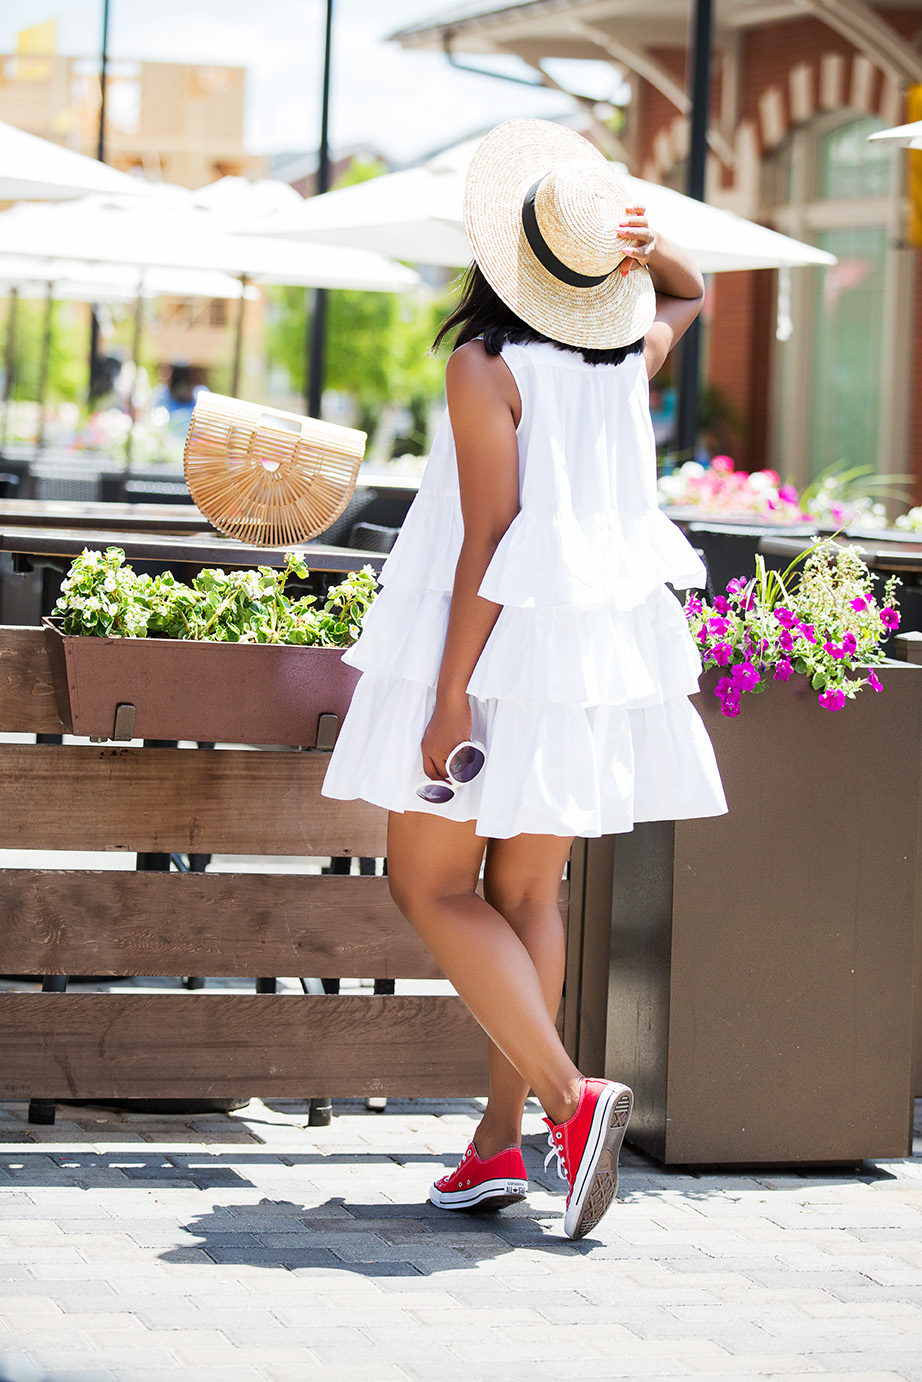 Asos white frill oversize shirt dress, www.jadore-fashion.com